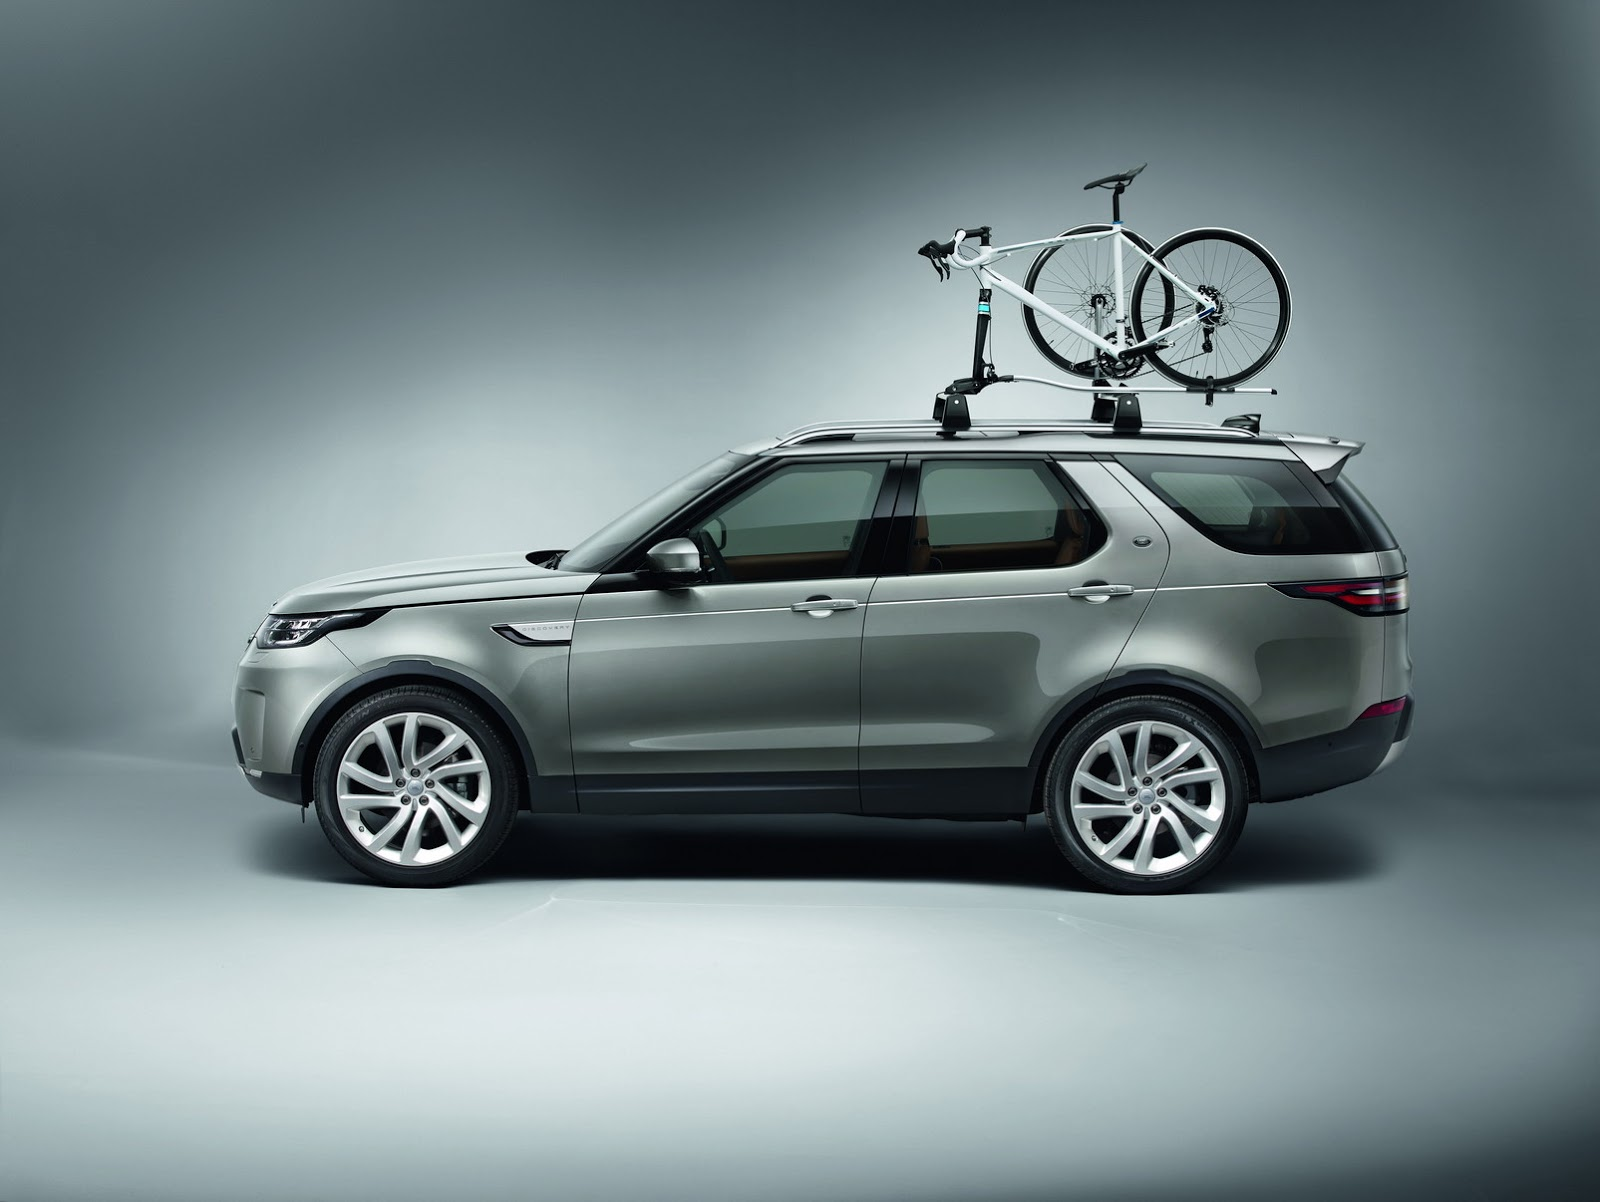 Discovery SVX In ing Land Rover Stands True To Its f Road